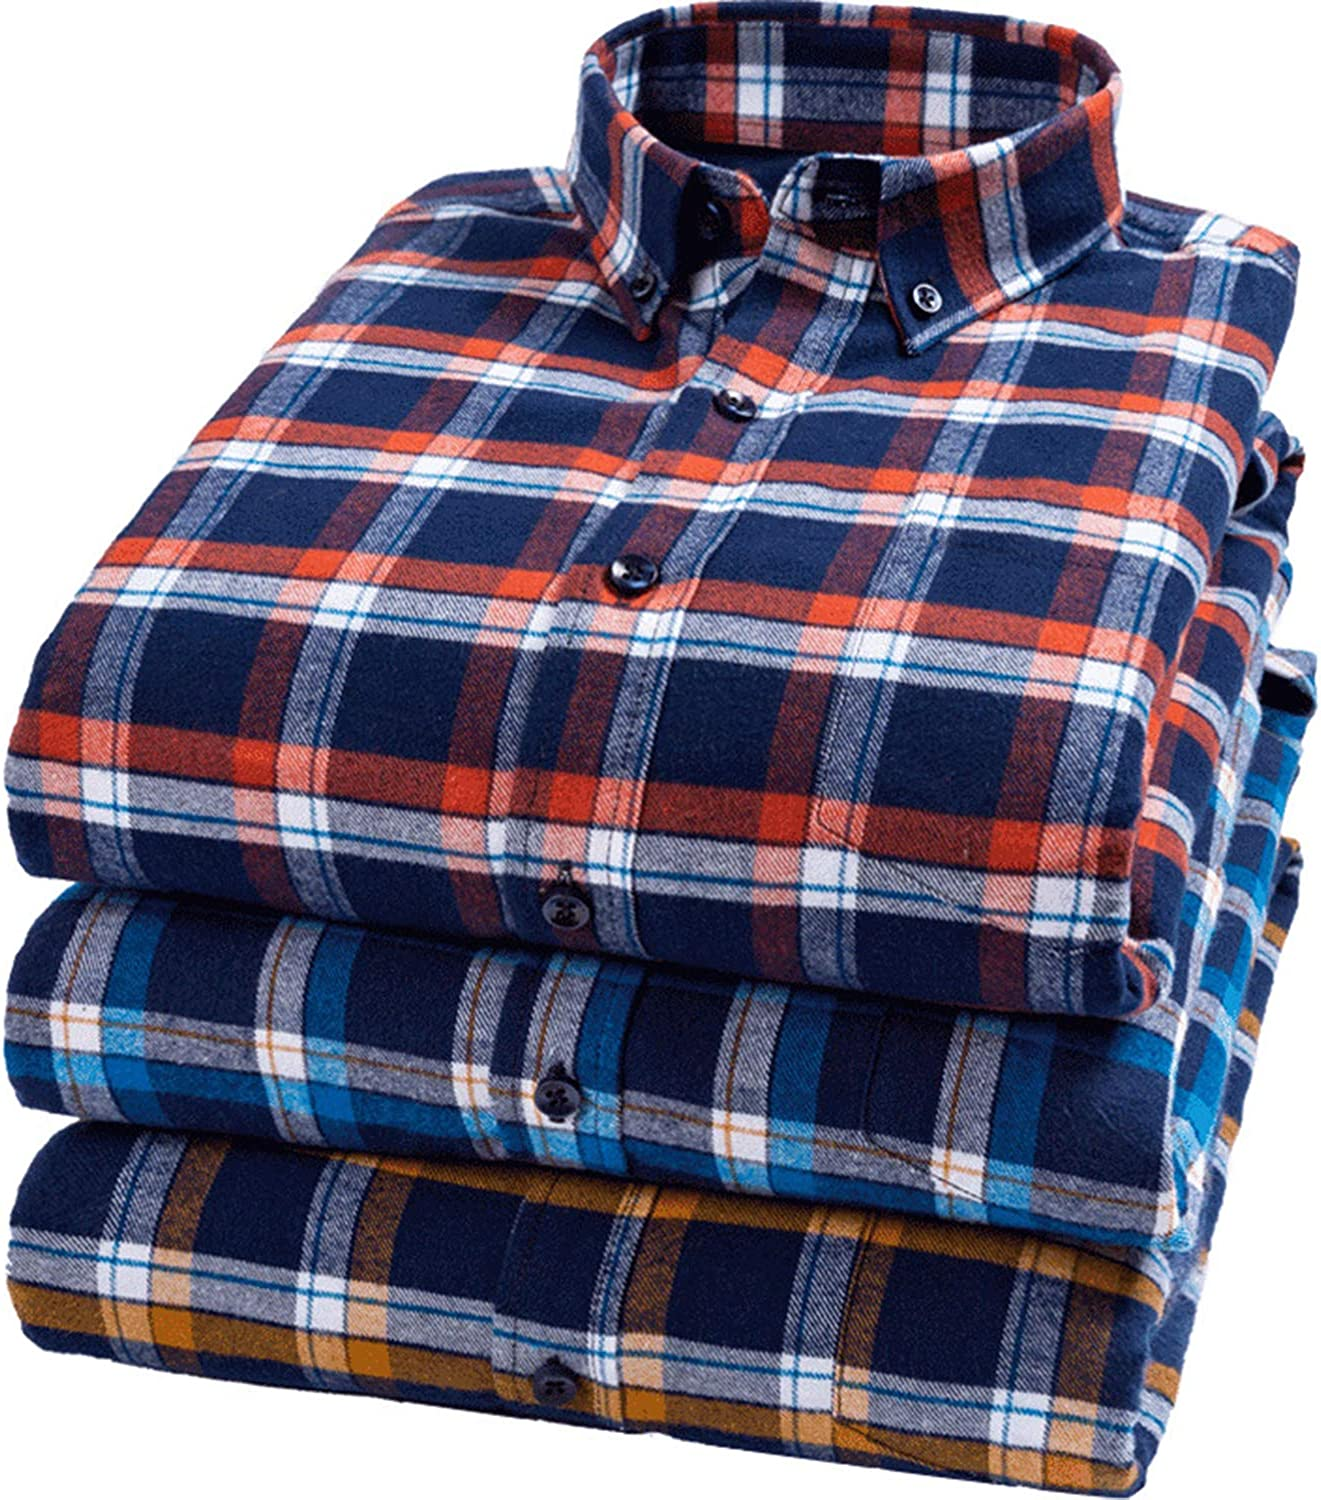 Gihuo Mens Winter Warm Casual Cotton Placid Long Sleeve Fleece Lined Button Down Shirt